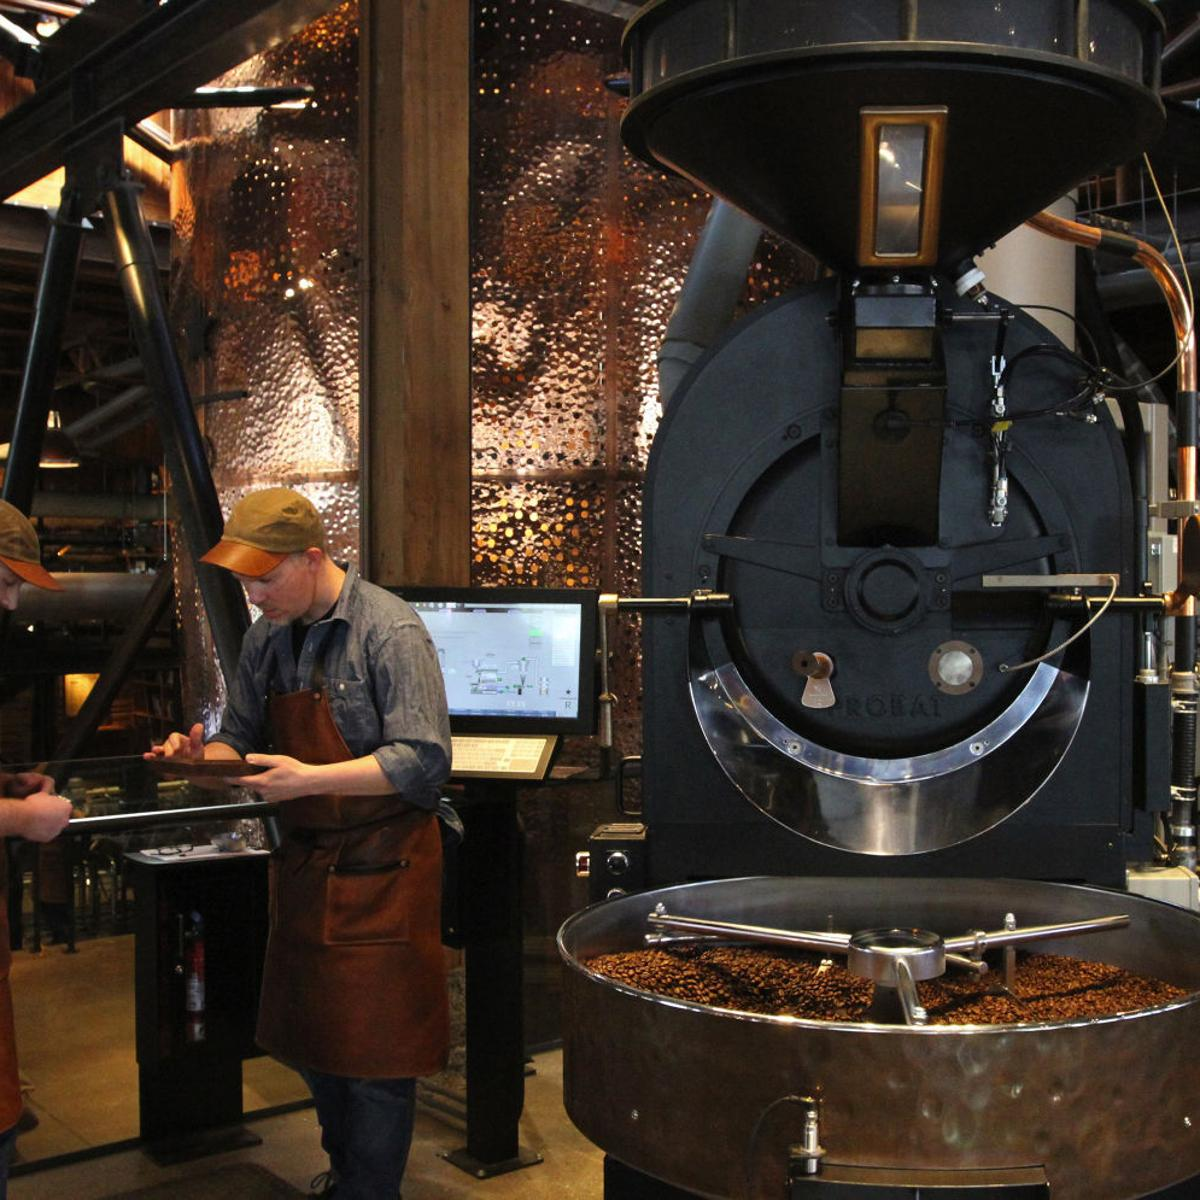 Asian Kitchen Le Havre starbucks gets the scoop on world's top coffee beans